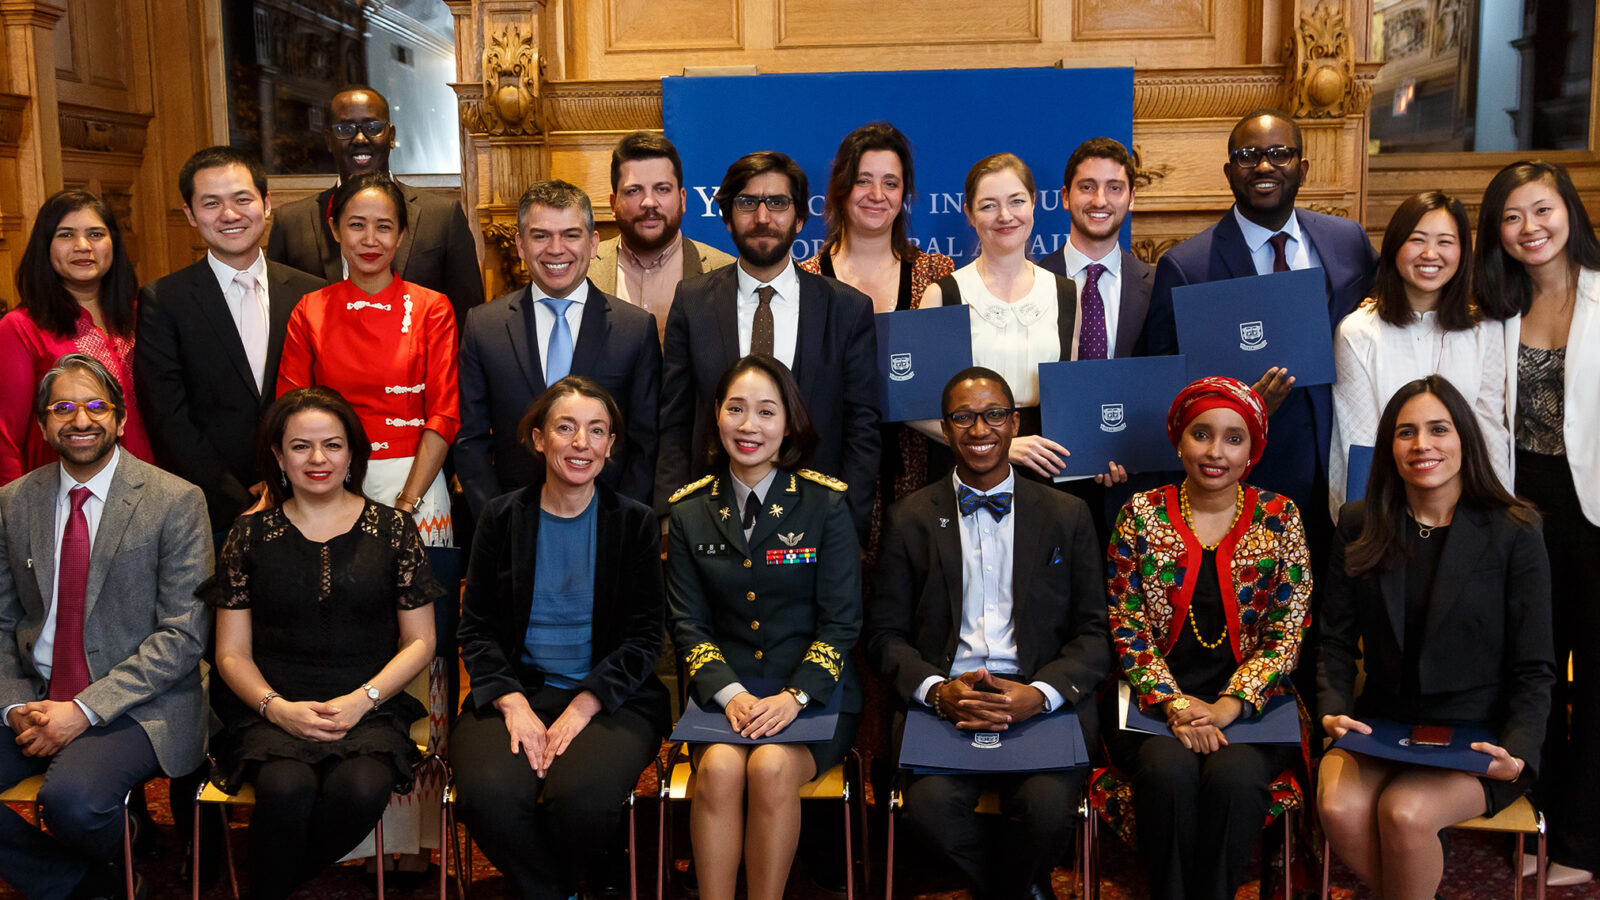 2018 Fellows conclude time at Yale photo